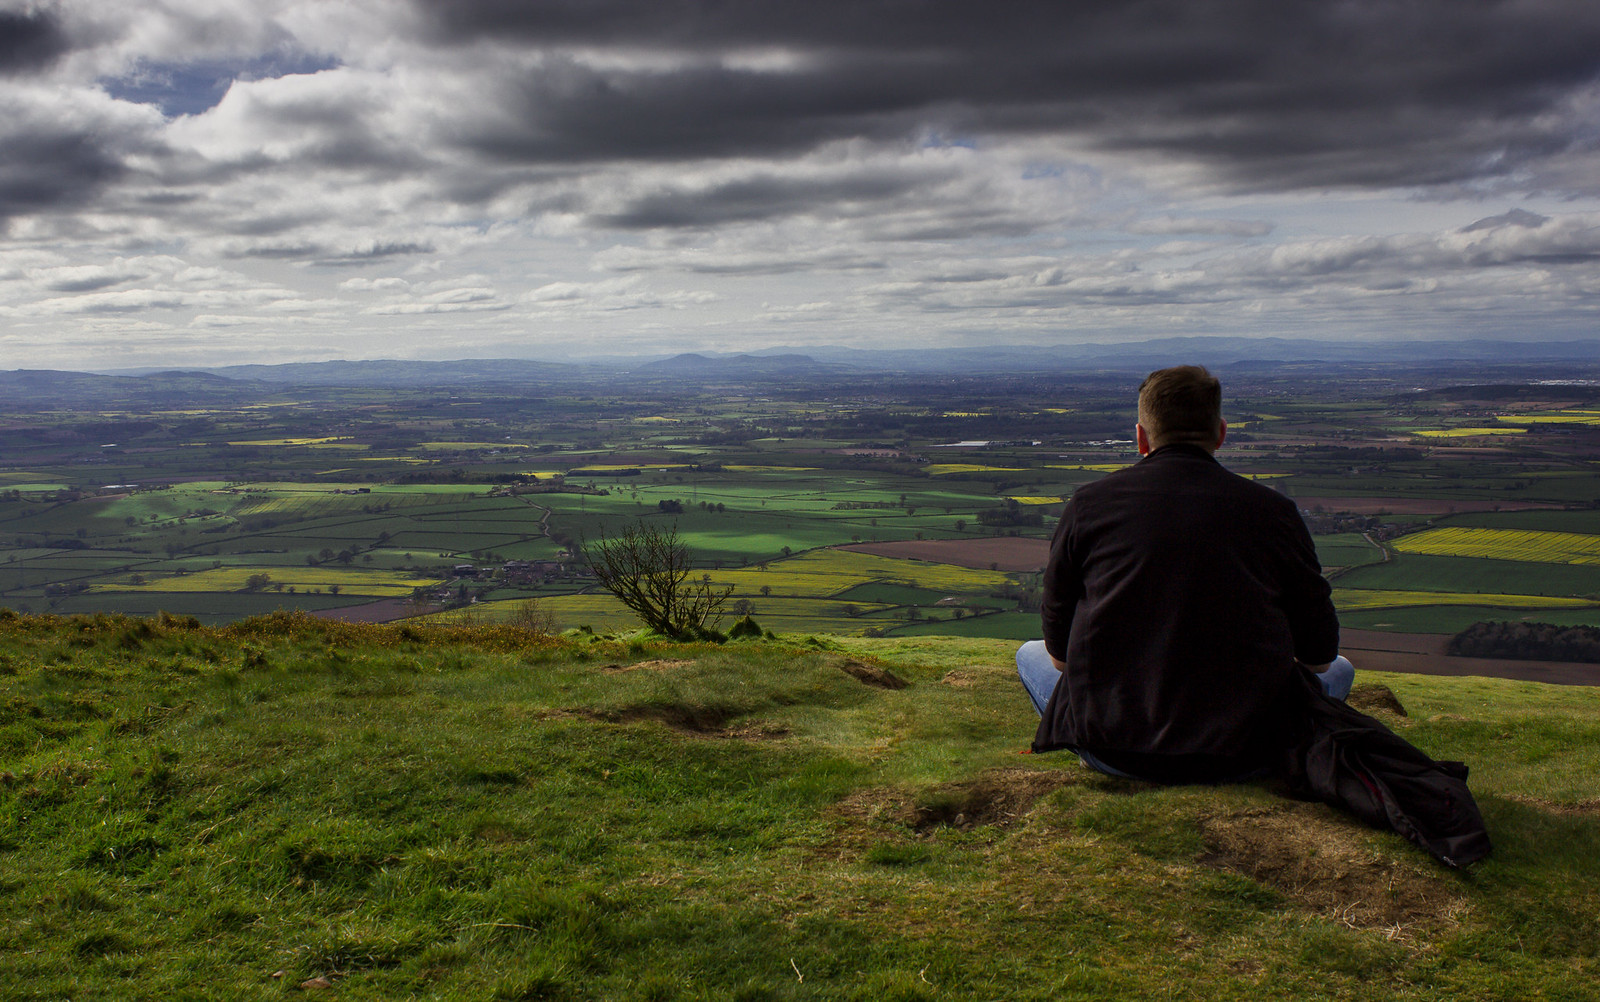 The view over Shropshire from the top of the Wrekin